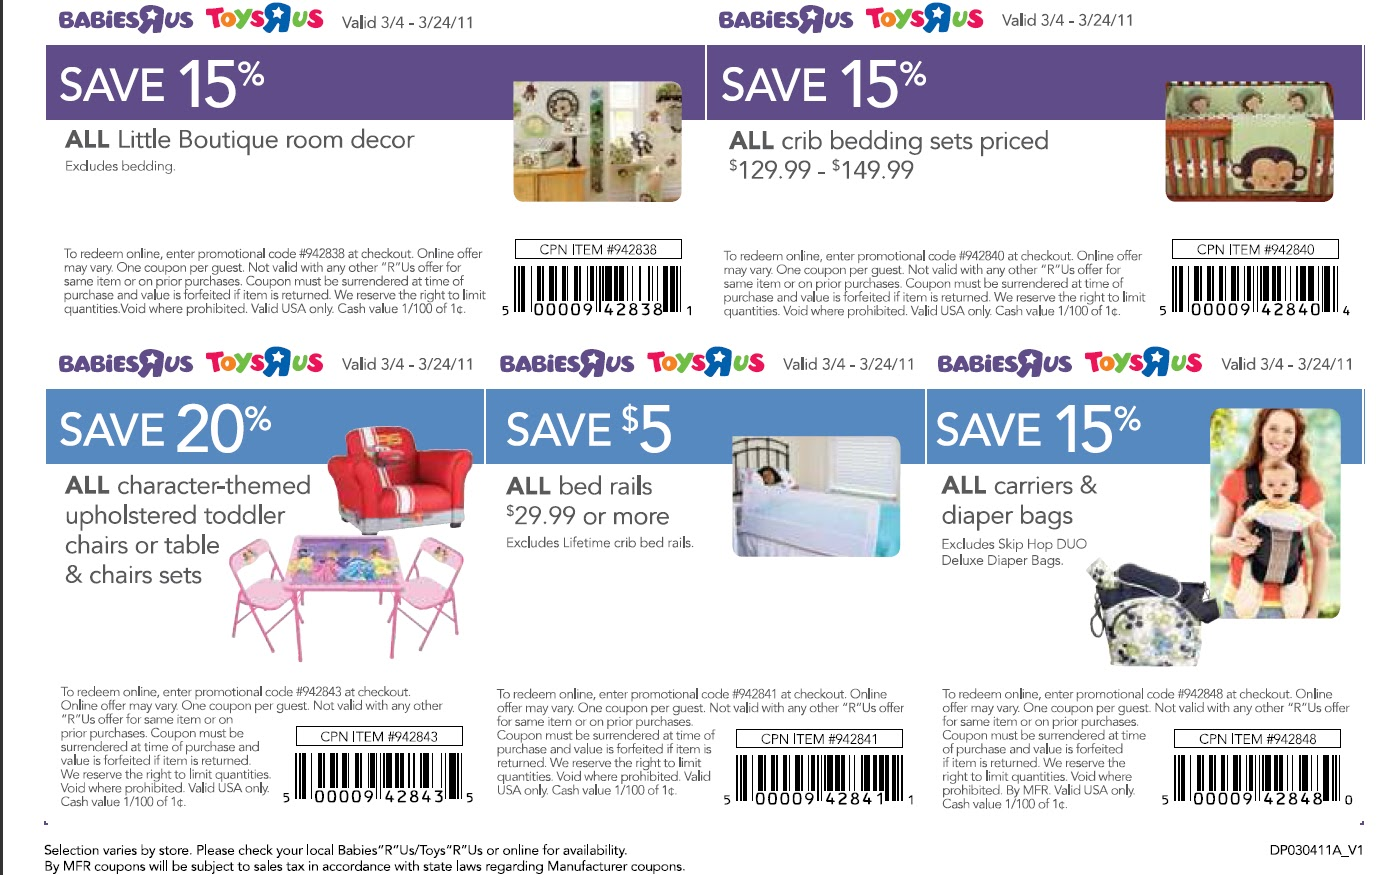 Current toys r us coupons 2019